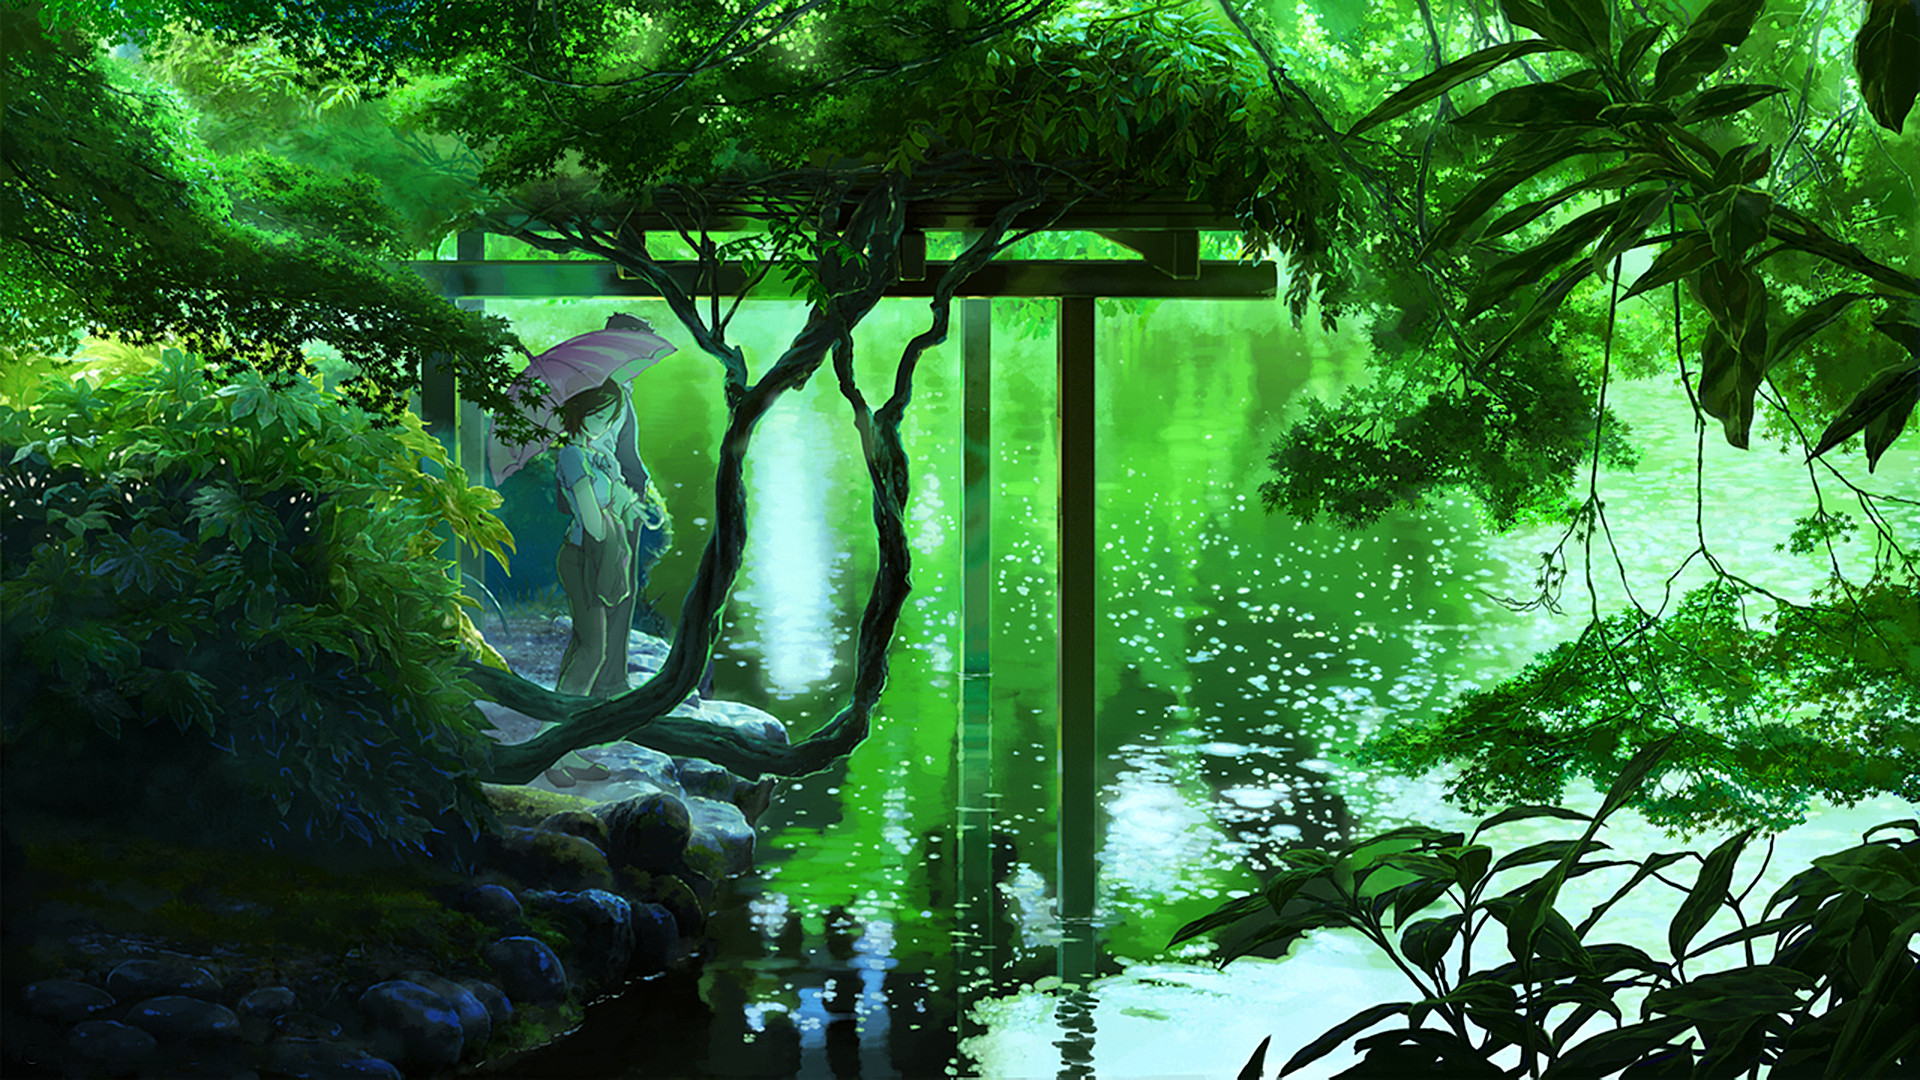 #lakes, #plants, #umbrellas, #forests, #The Garden of